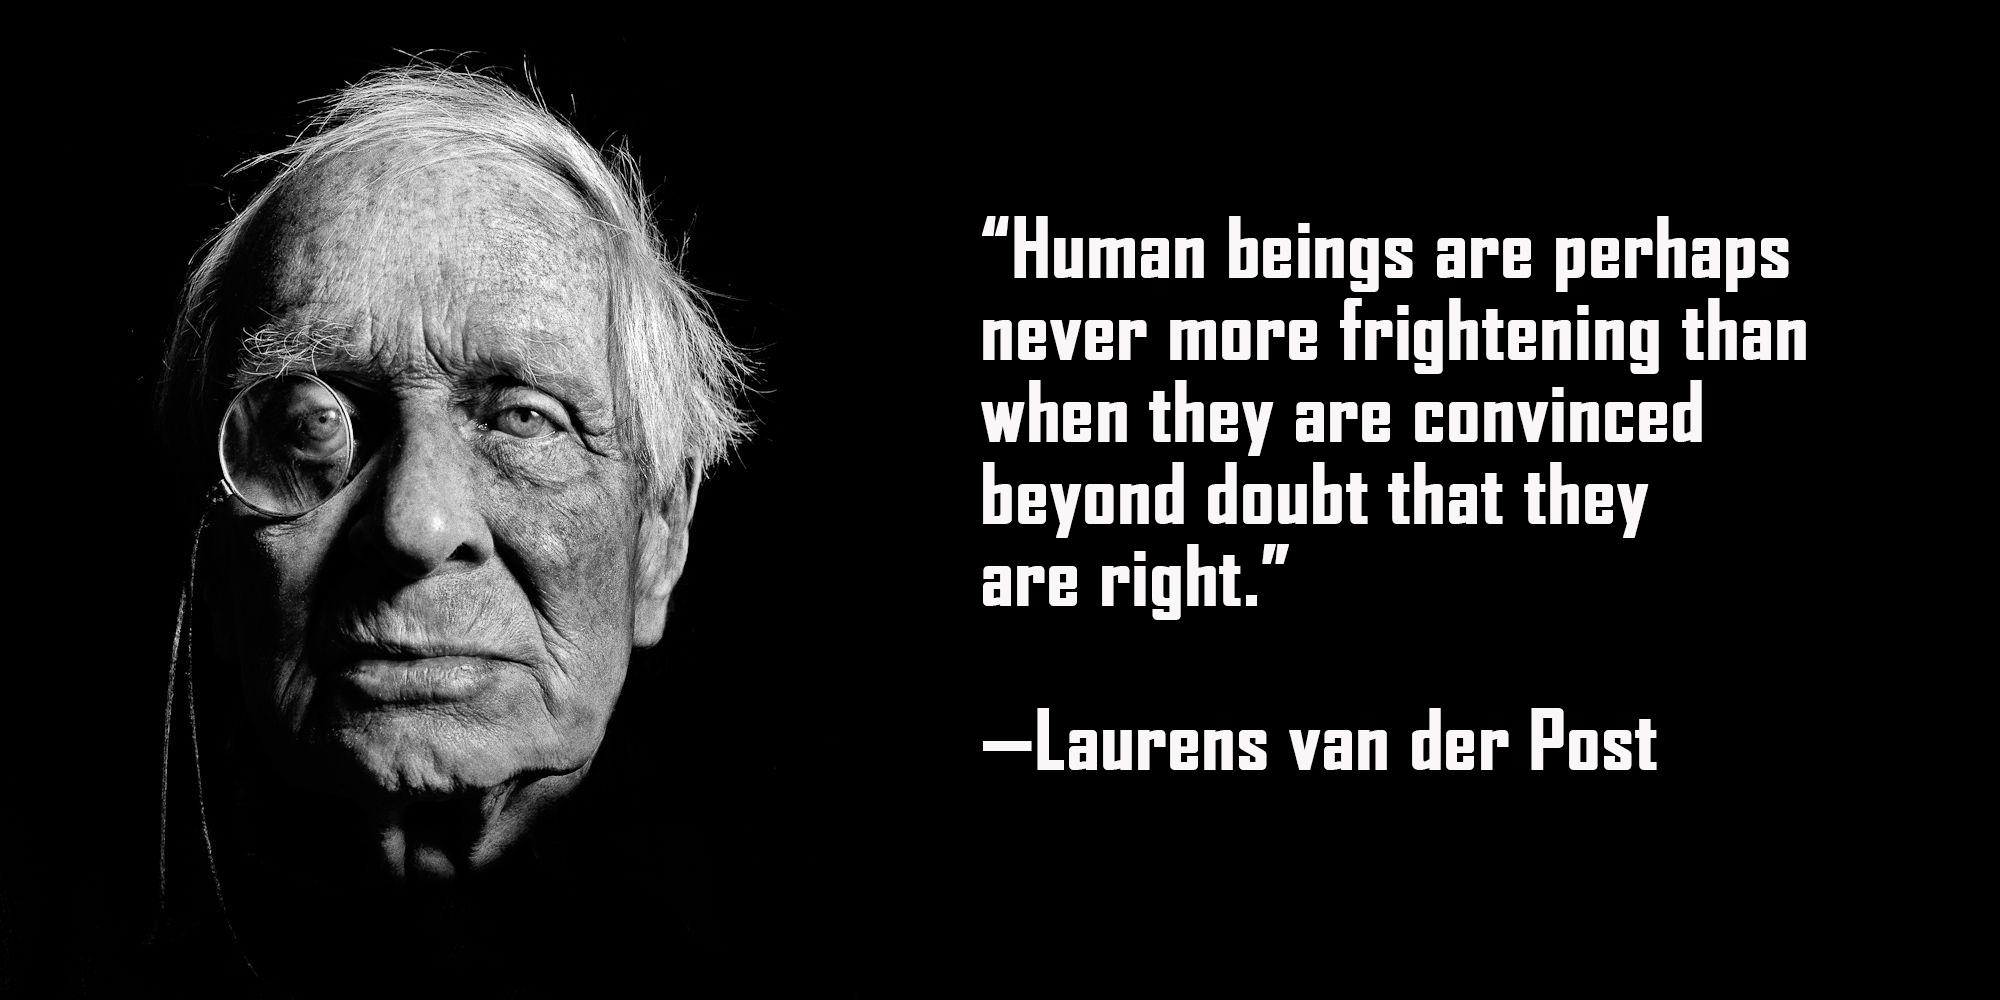 """Human beings are perhaps never more frightening than when they are convinced beyond doubt that they are right.""—Laurens van der Post [2000×1000] [OC]"